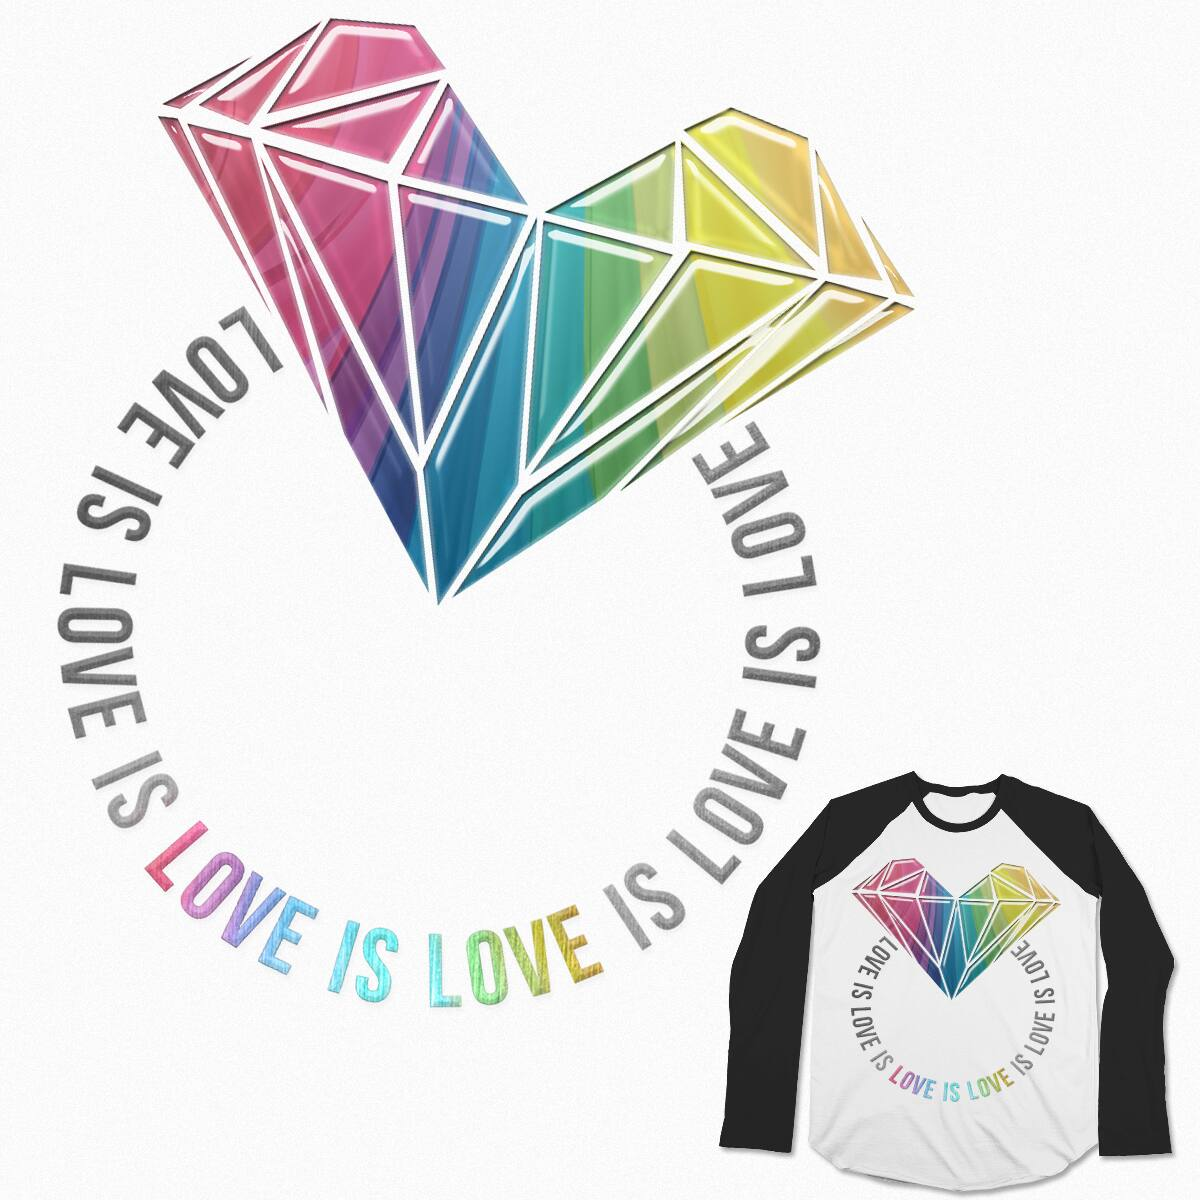 Let LGBTQIA Put A Ring On It! by SamanthaRybrn on Threadless